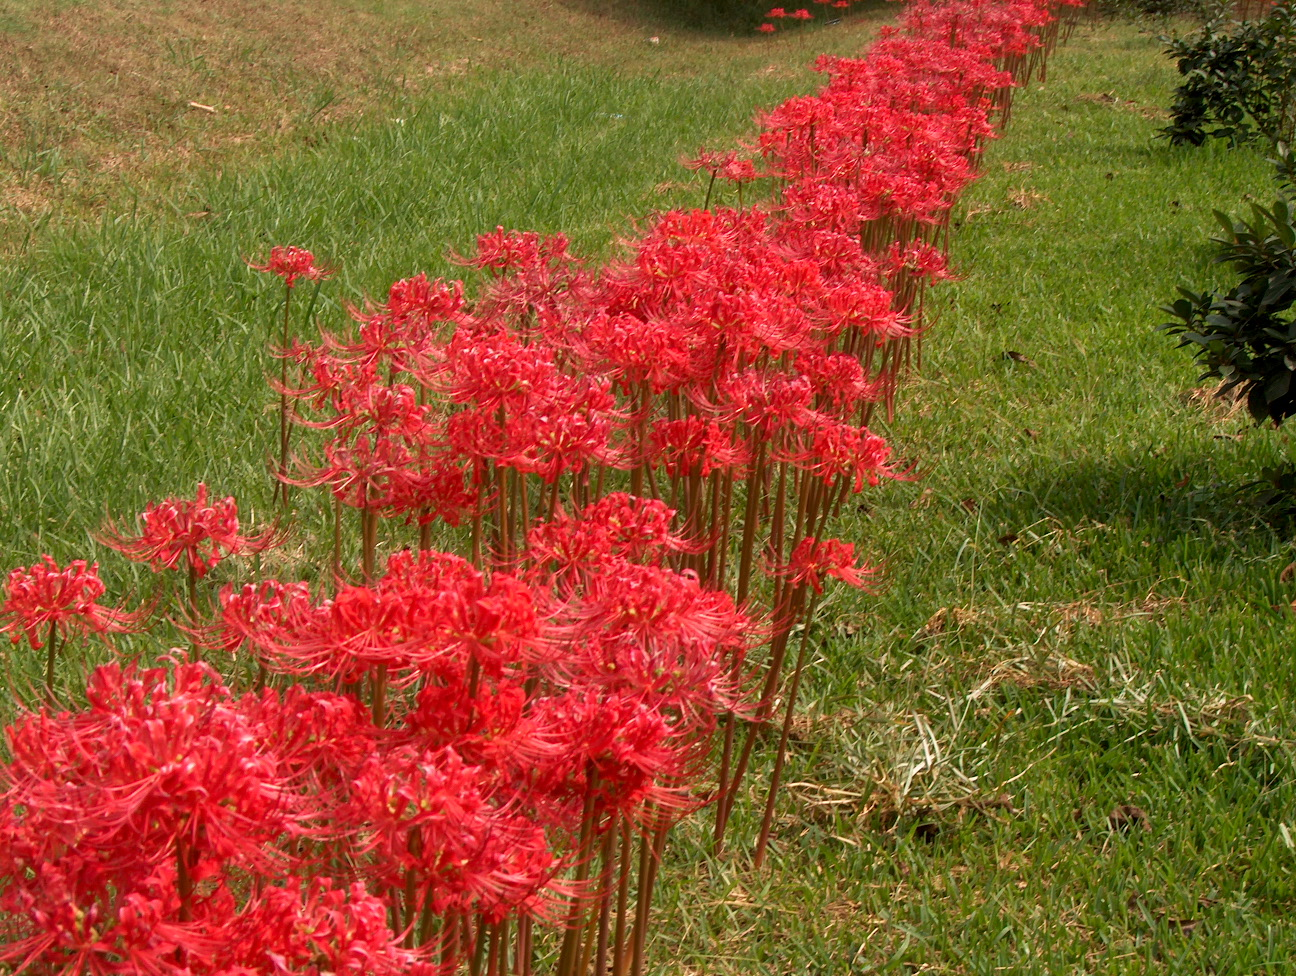 Lycoris radiata / Lycoris radiata